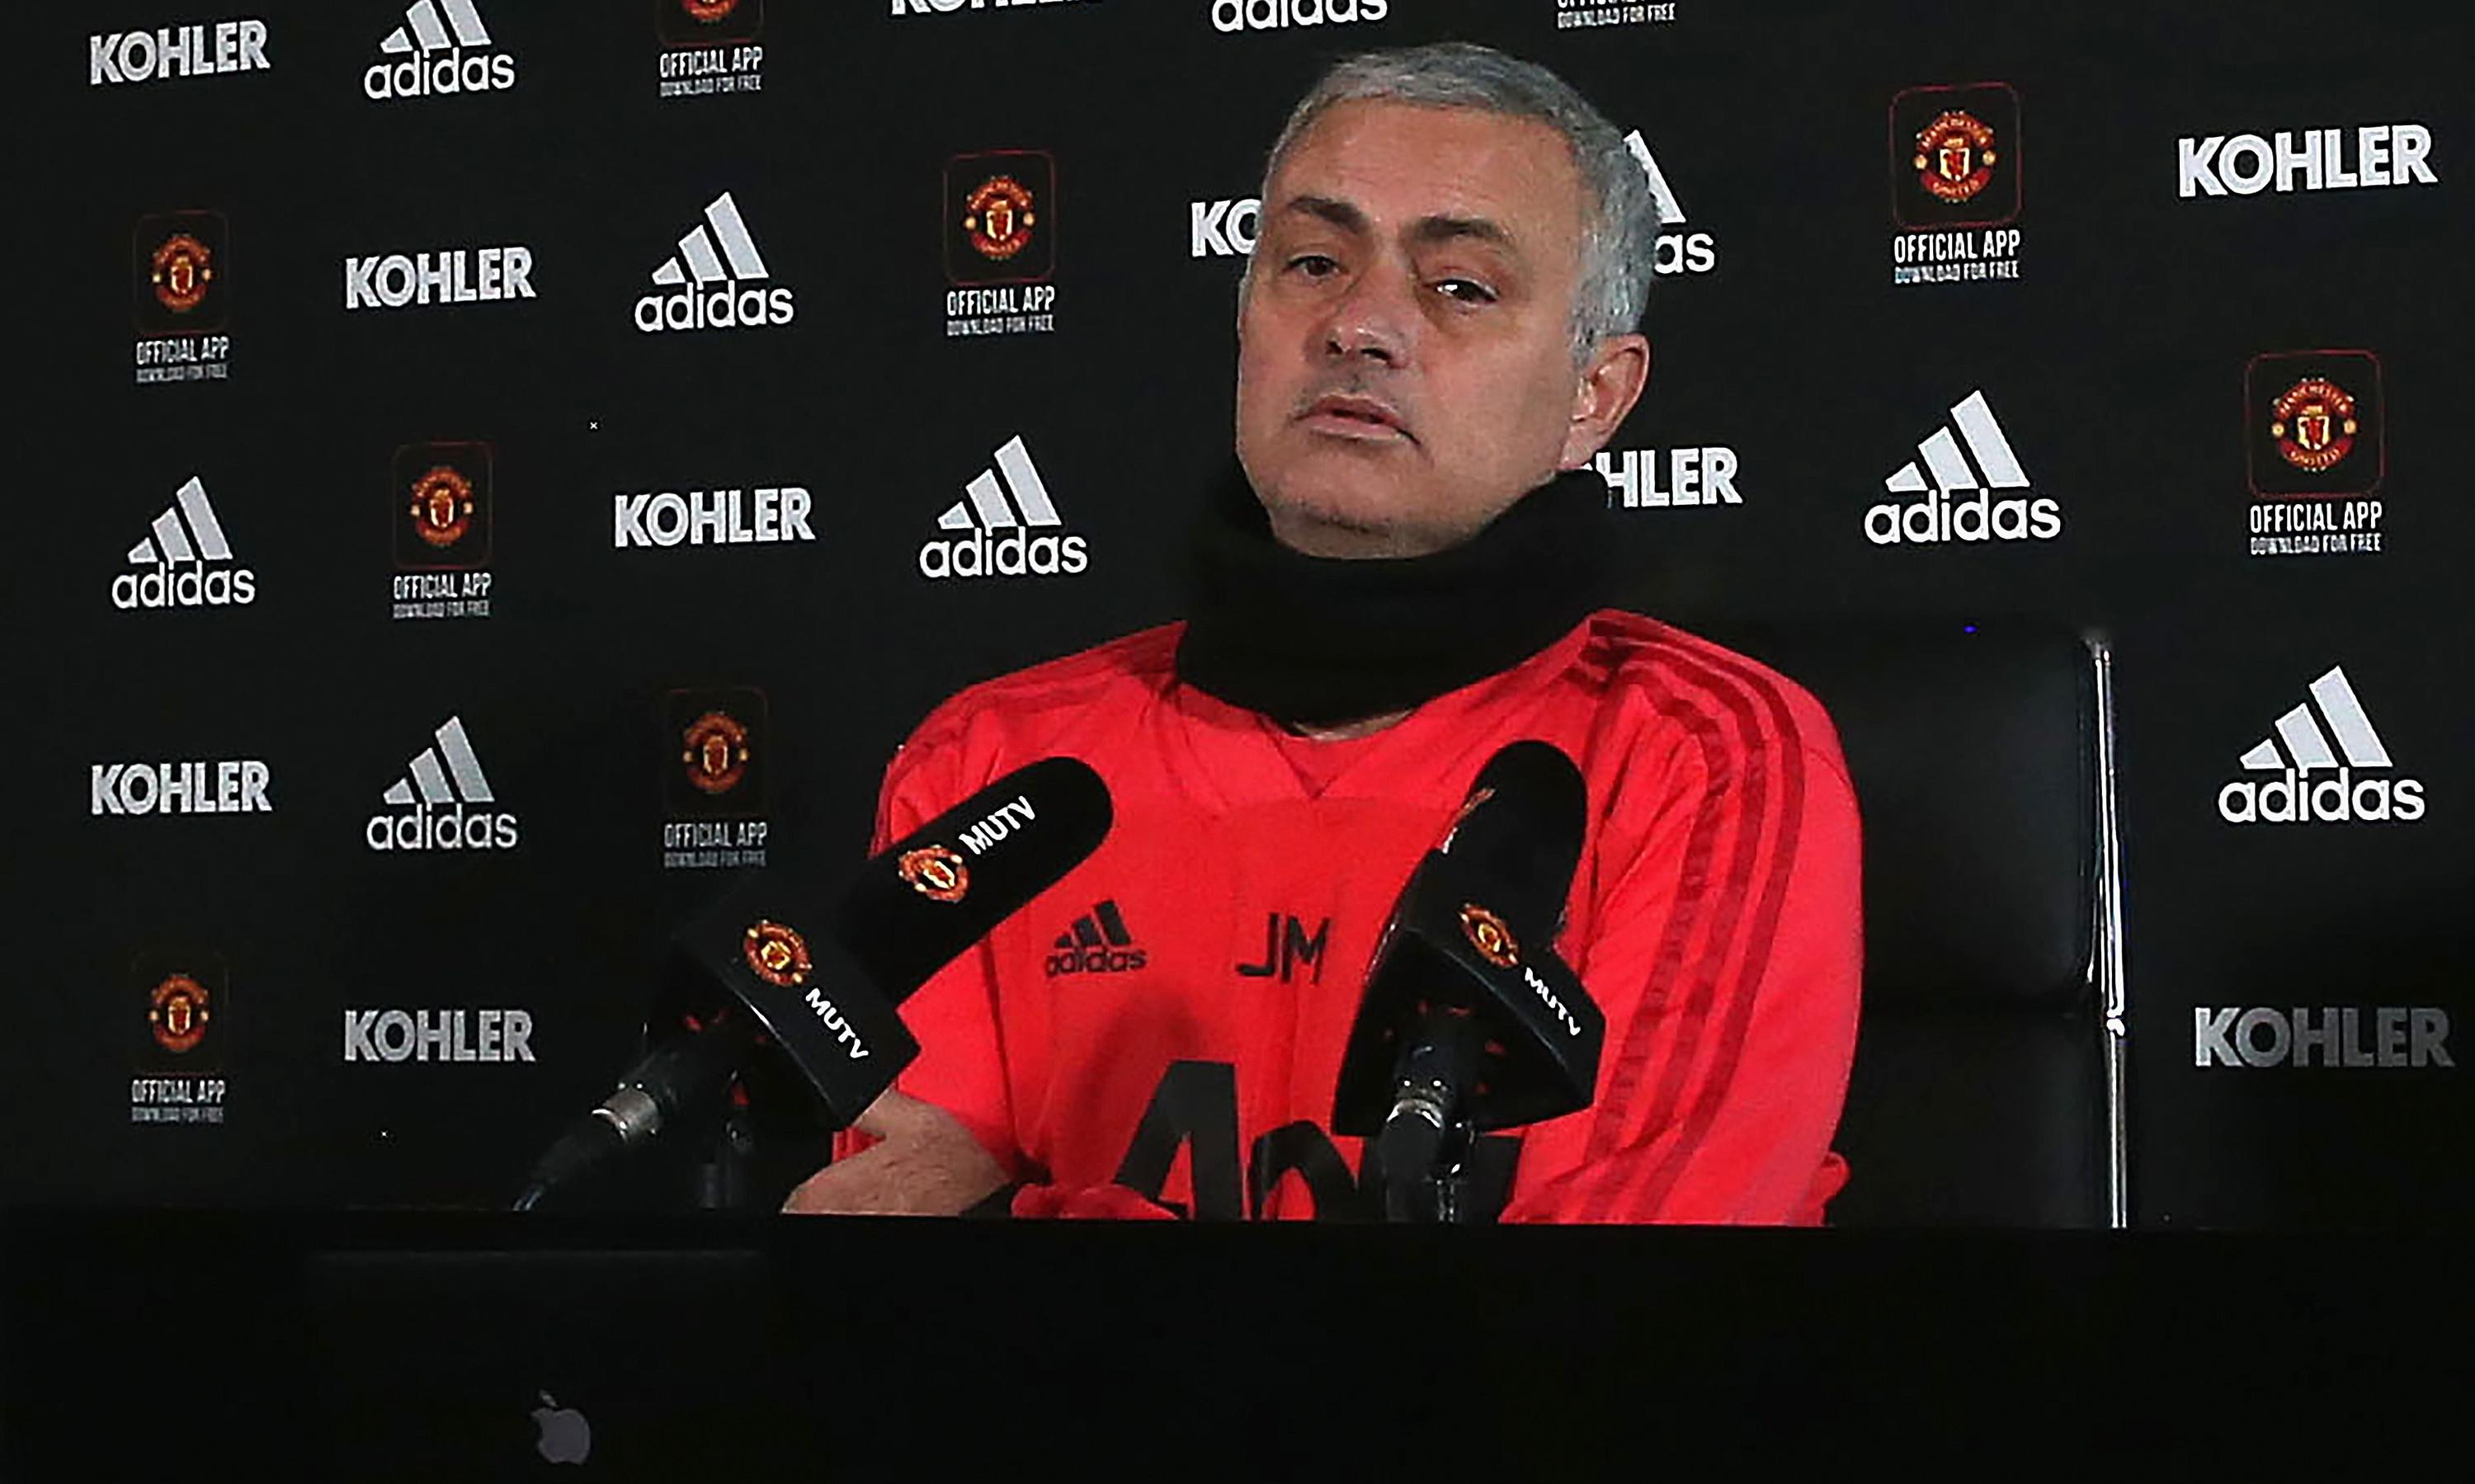 José Mourinho: Manchester United are far from playing in my image